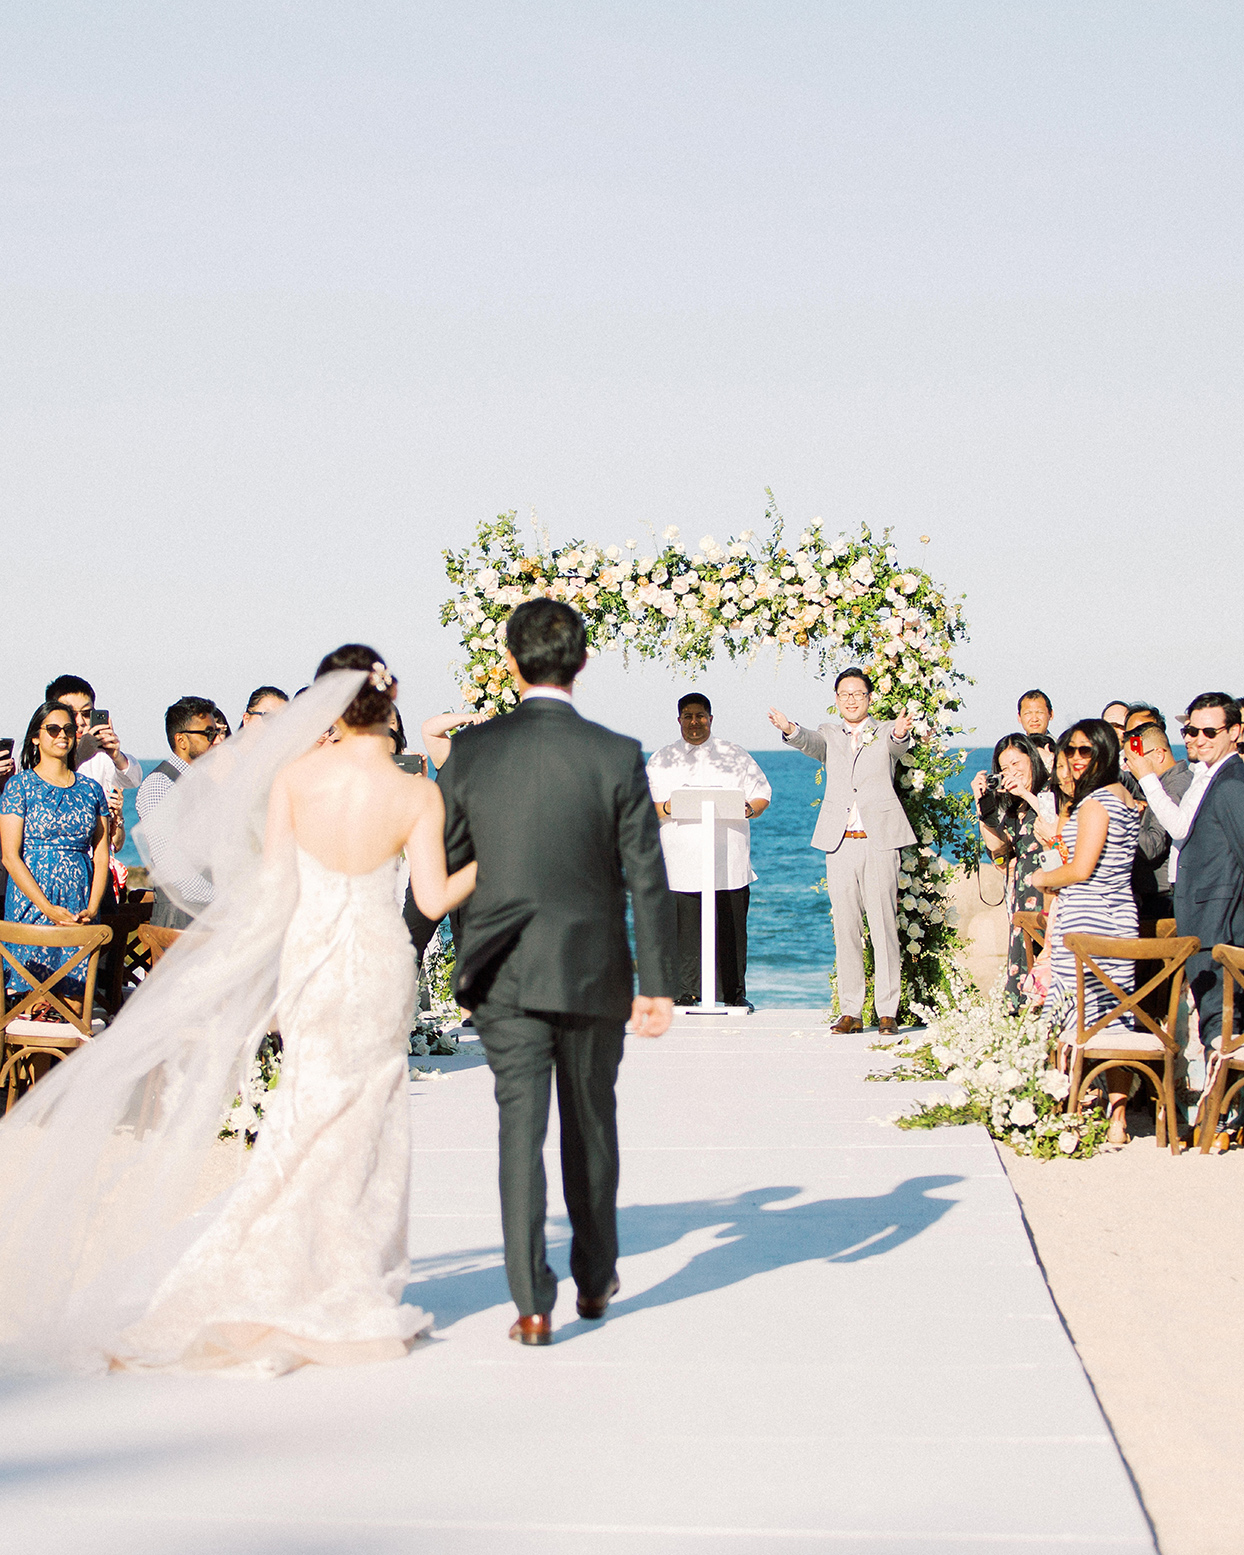 kirsten deran wedding ceremony processional on beach